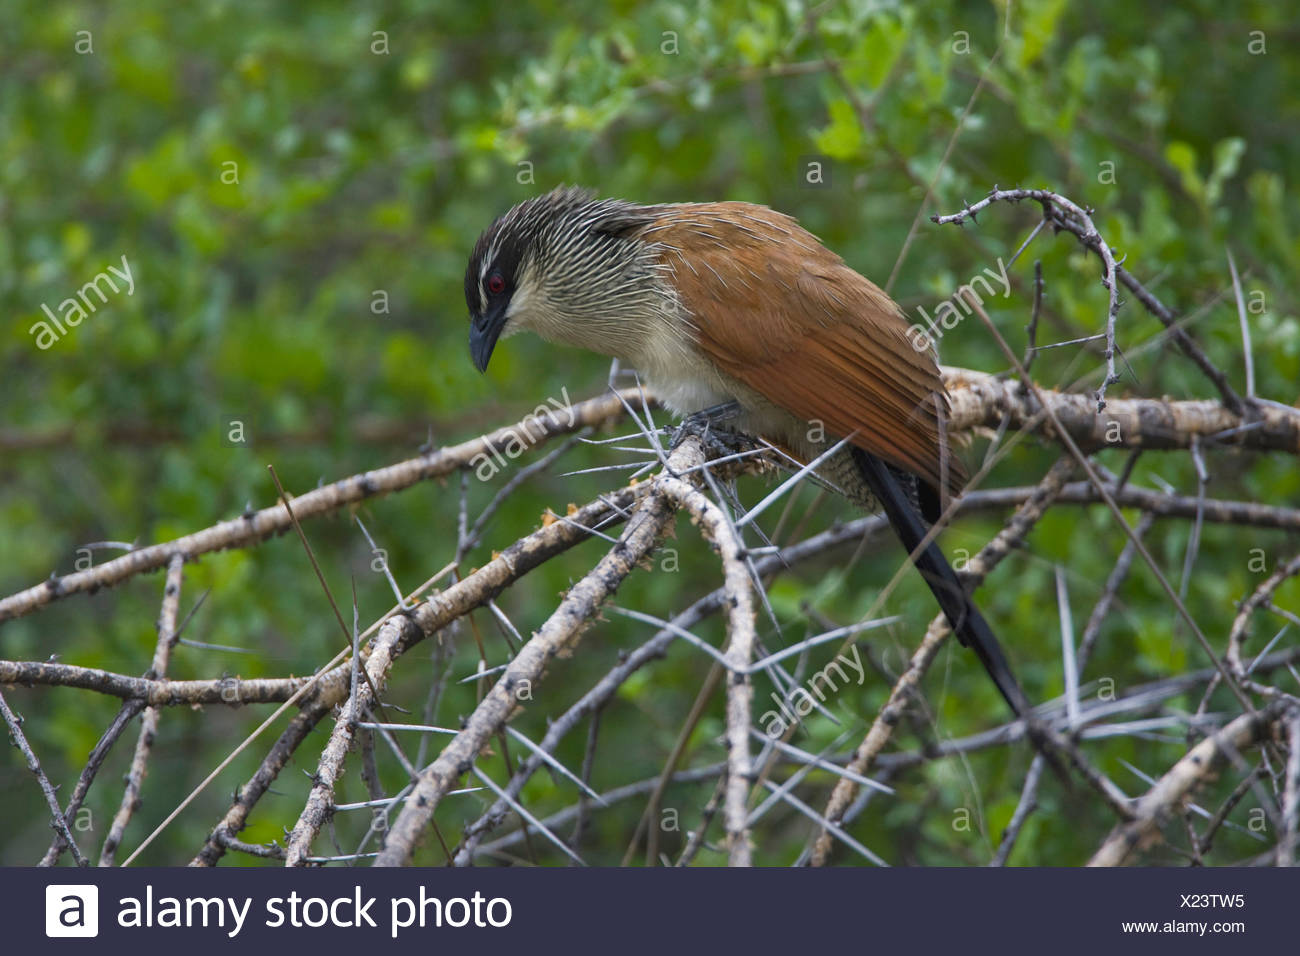 white-browed coucal (Centropus superciliosus), on shrub, Namibia, Mahango National Park - Stock Image